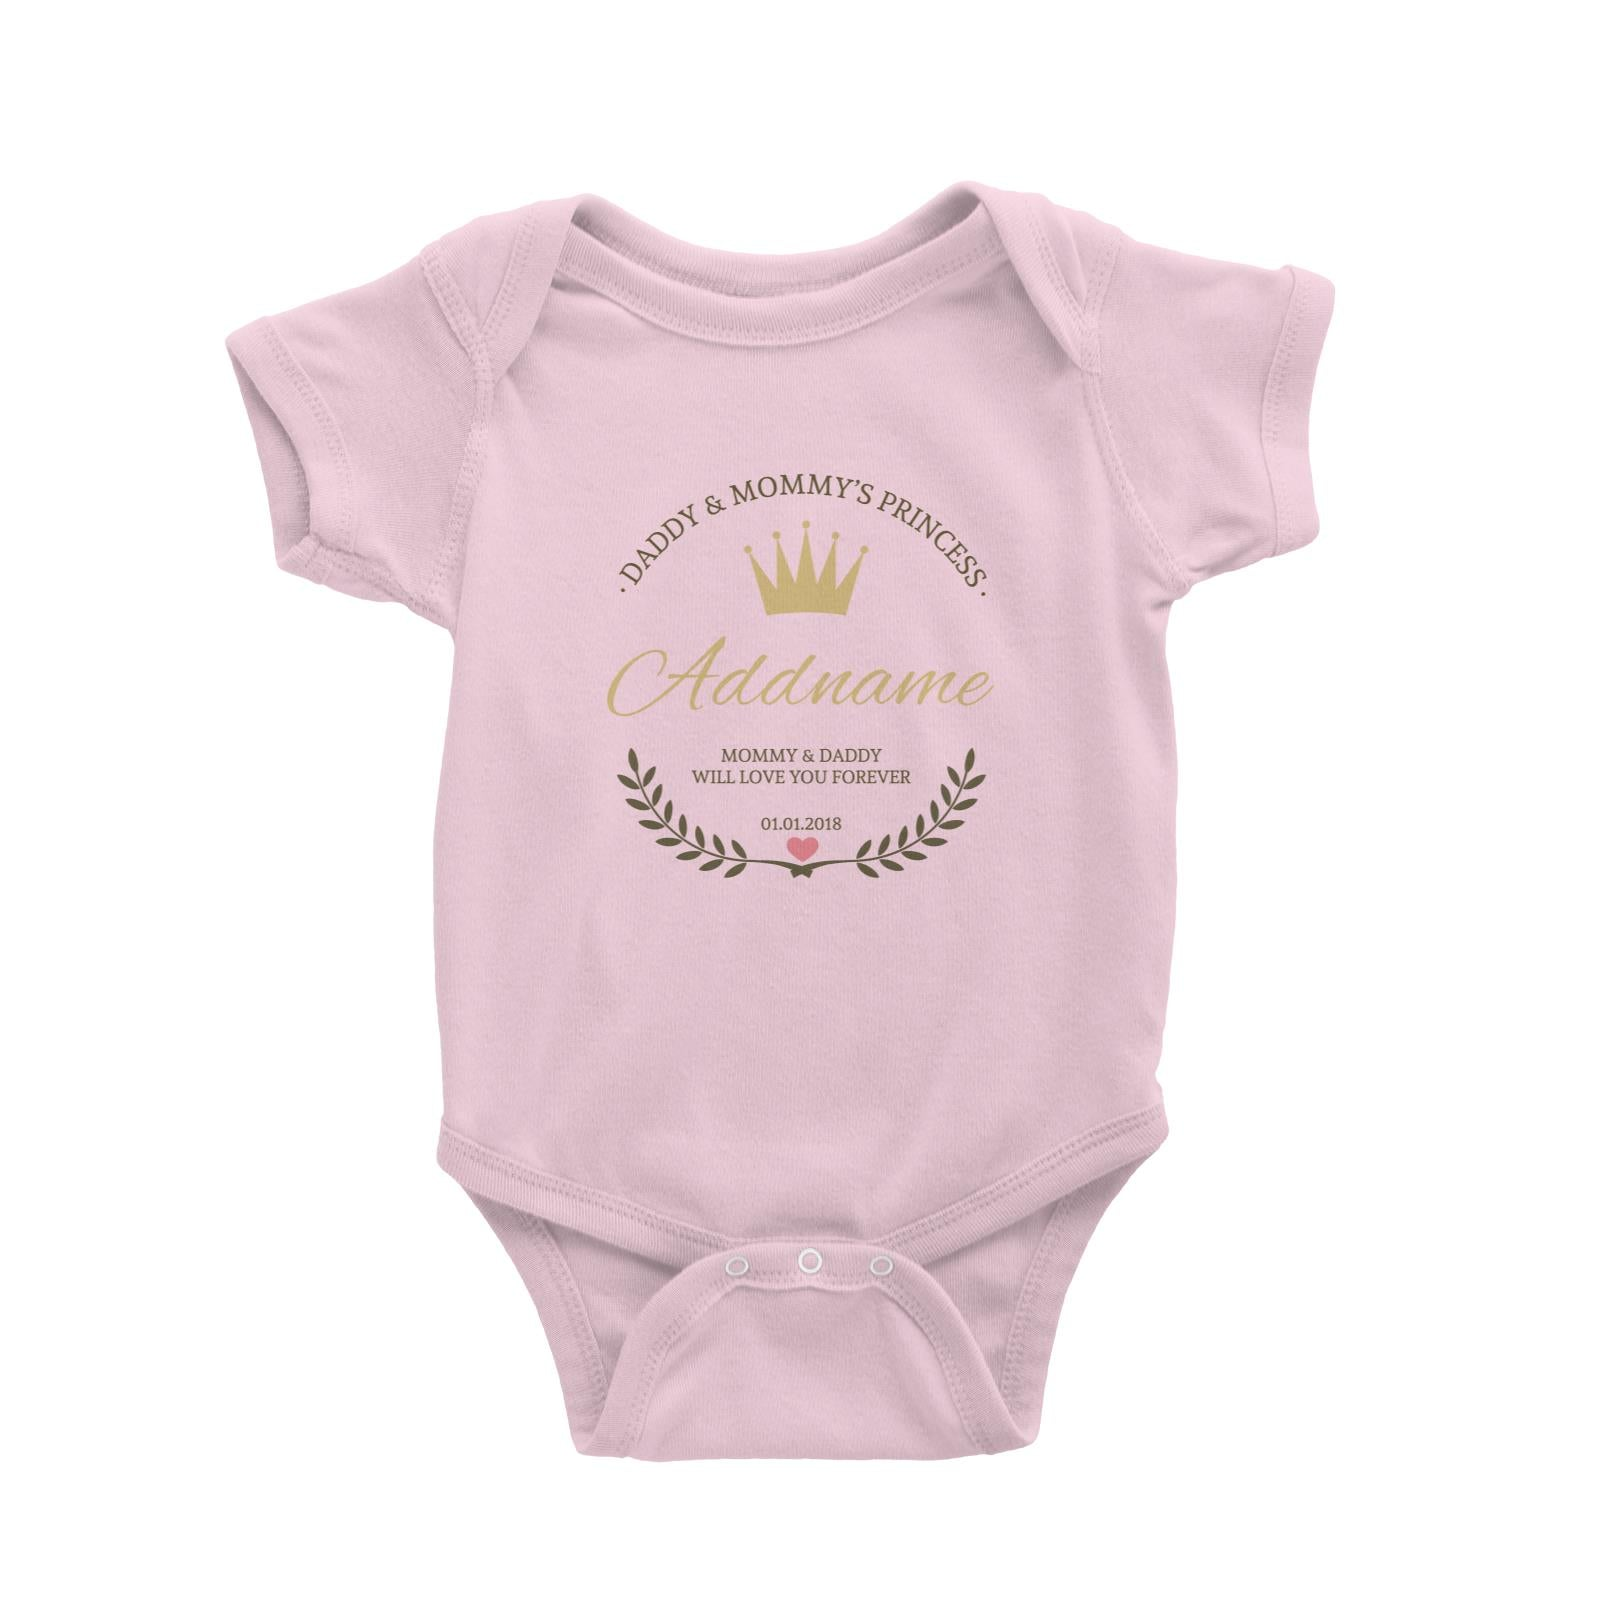 Daddy and Mommy's Princess with Tiara Wreath Personazliable with Name Text and Date Baby Romper